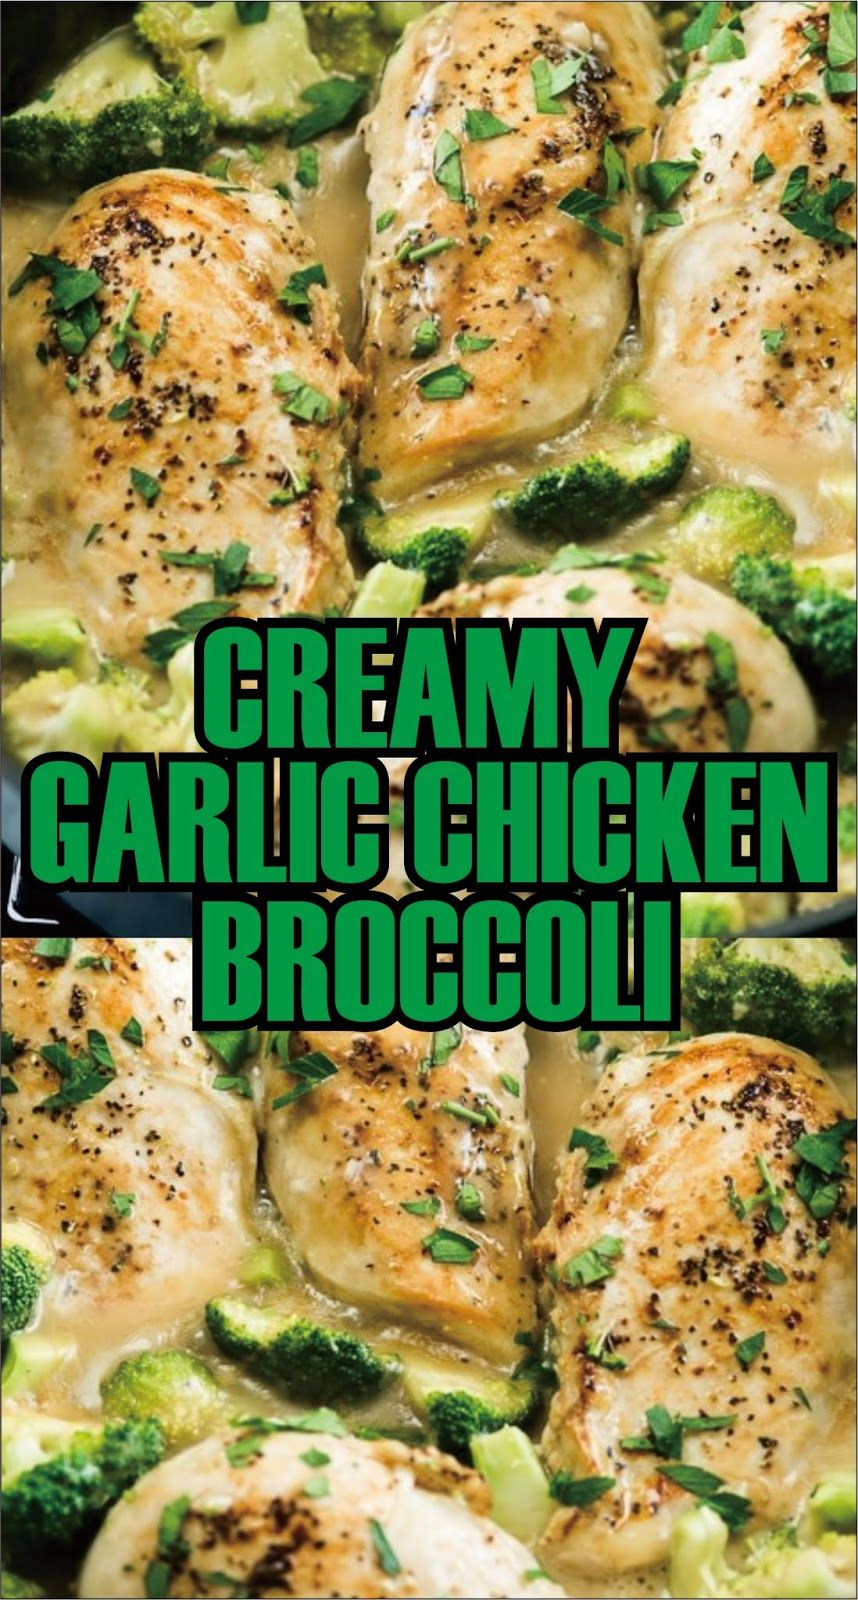 CREAMY GARLIC CHICKEN BROCCOLI  Creamy Seasoning Yellow with Broccoli is a home contender for everyone in the stemma. This is the perfect one-pot doormat direction with a homespun creamy flavorer sauce when you're in condition of something yummy substantial and unchaste for a weeknight dinner. Add your action of food or dramatist to plume up all the pleasing creamy garlic sauce.  The crucifer adds a wonderful craunch and produce to this flavoring chickenhearted. Remaining vegetative options you #creamygarlicchicken